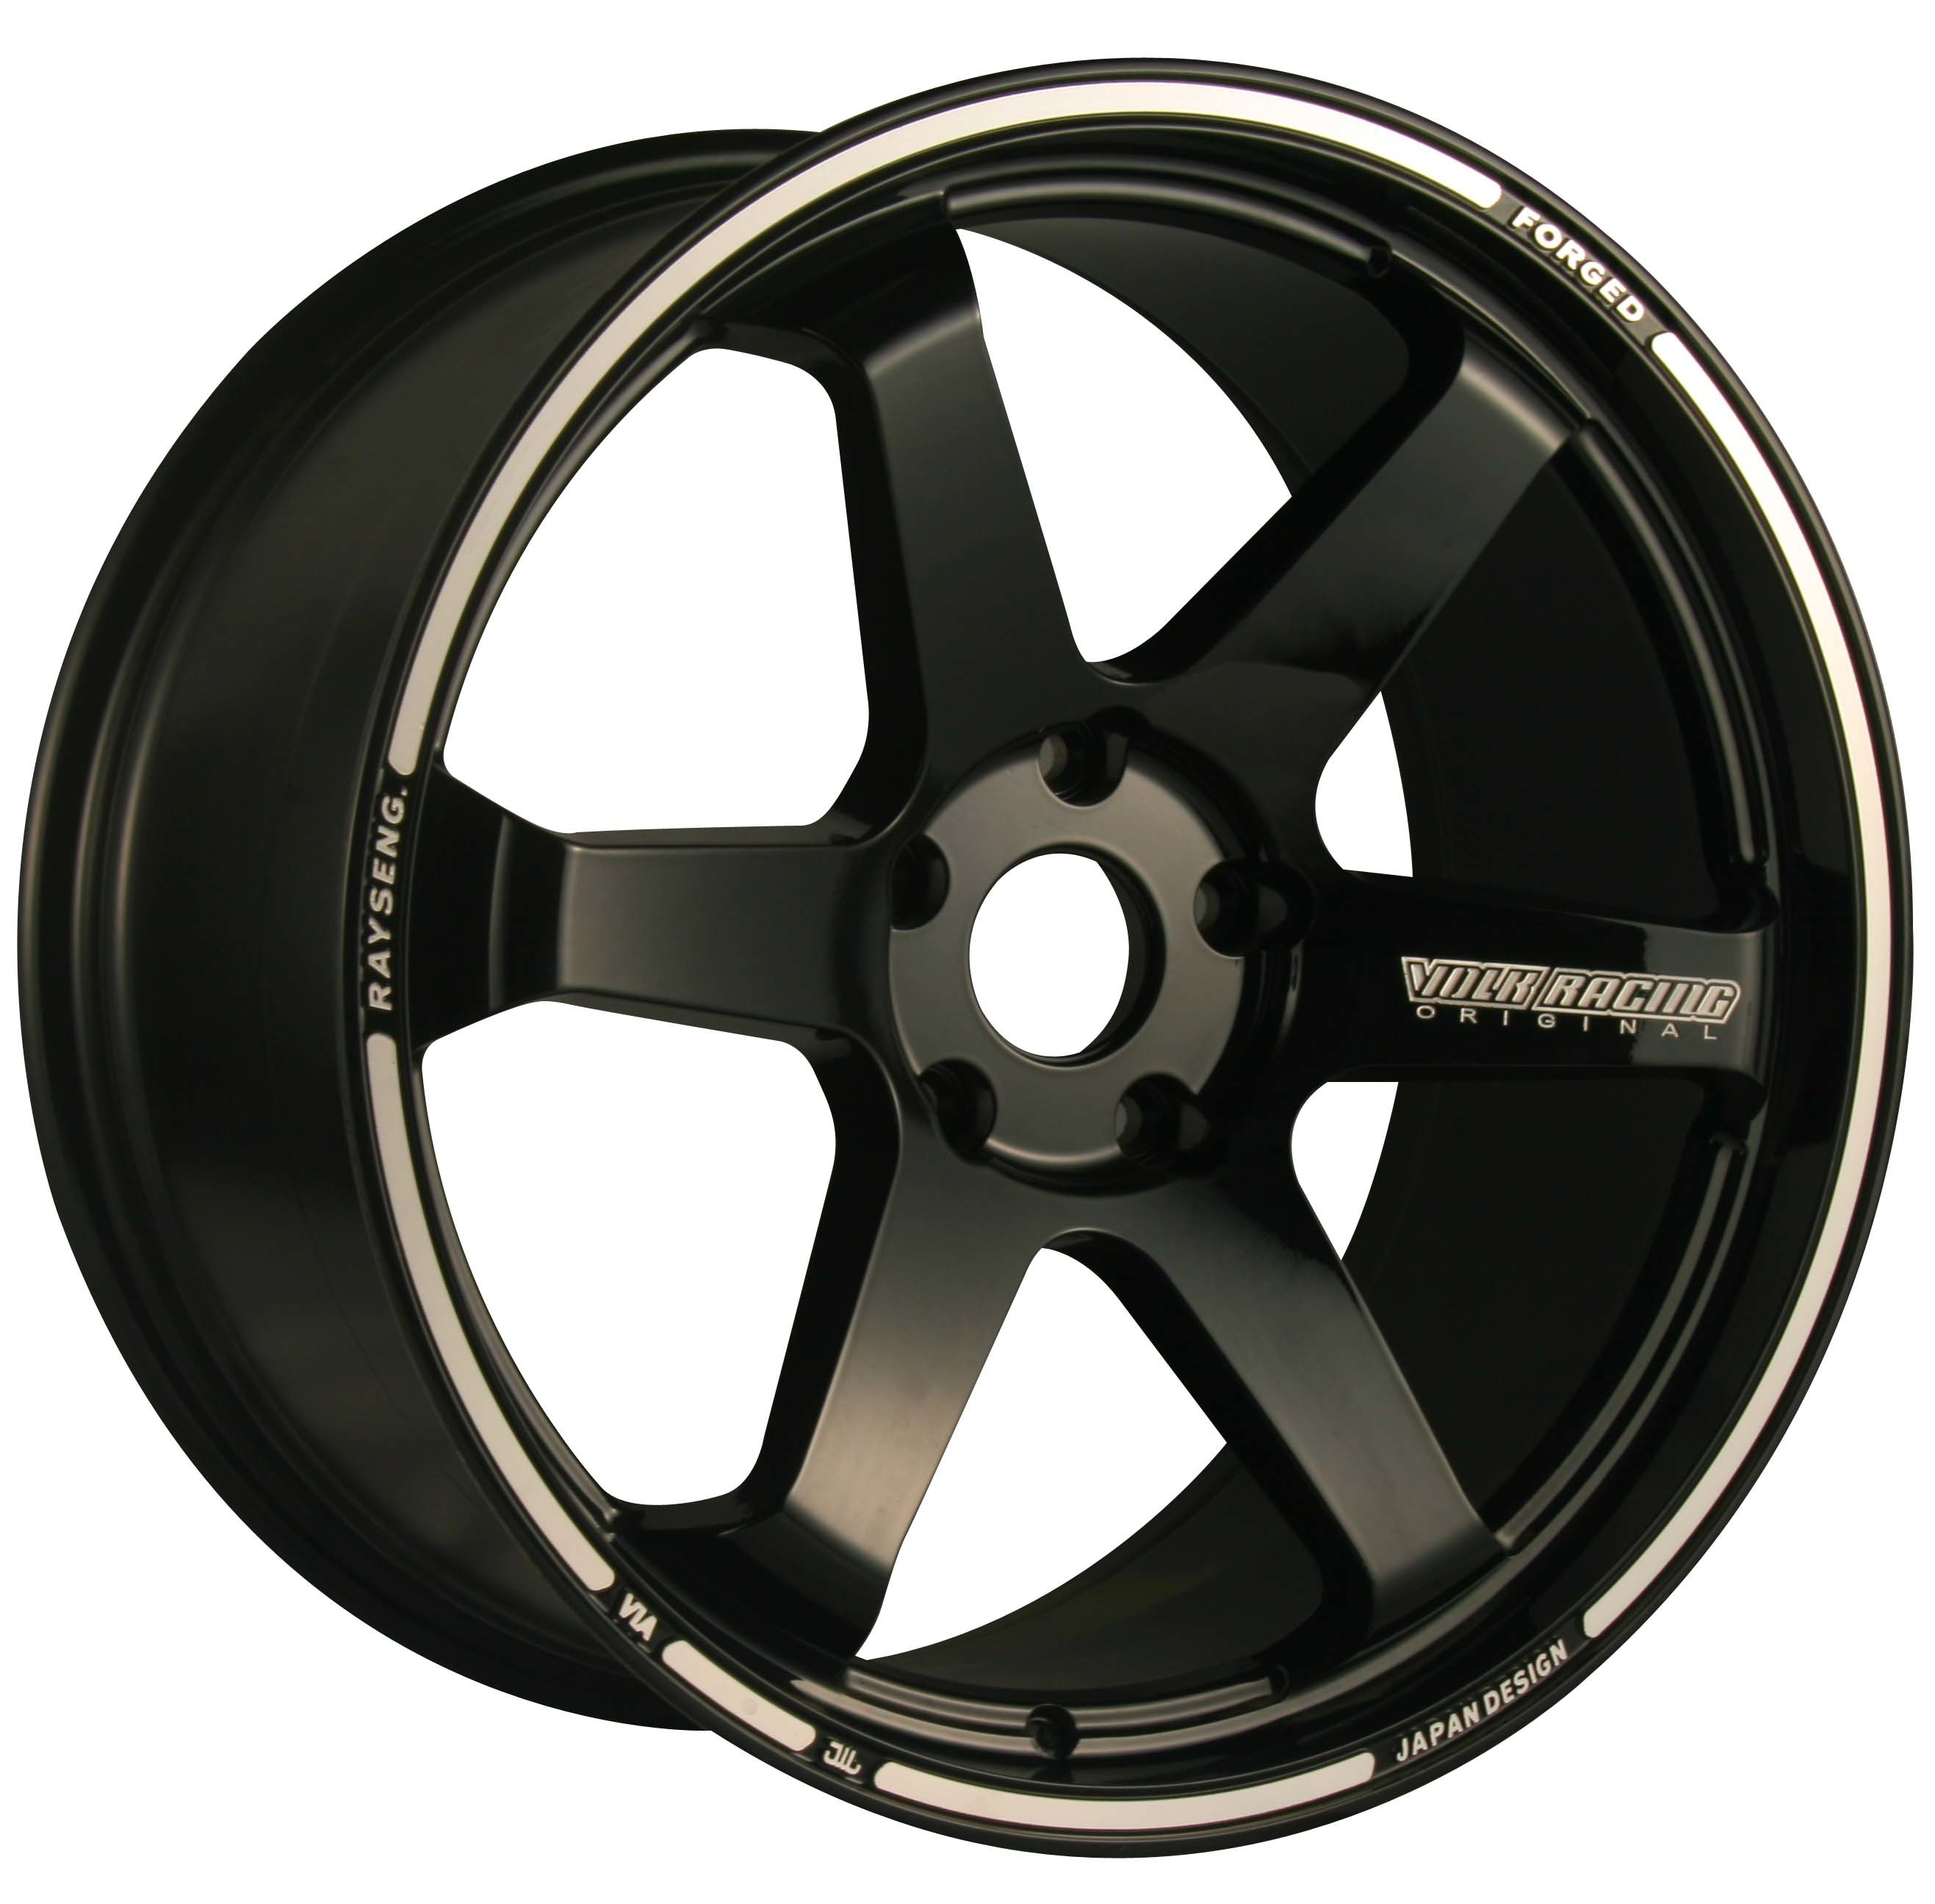 16inch-20inch Alloy Wheel for Aftermarket